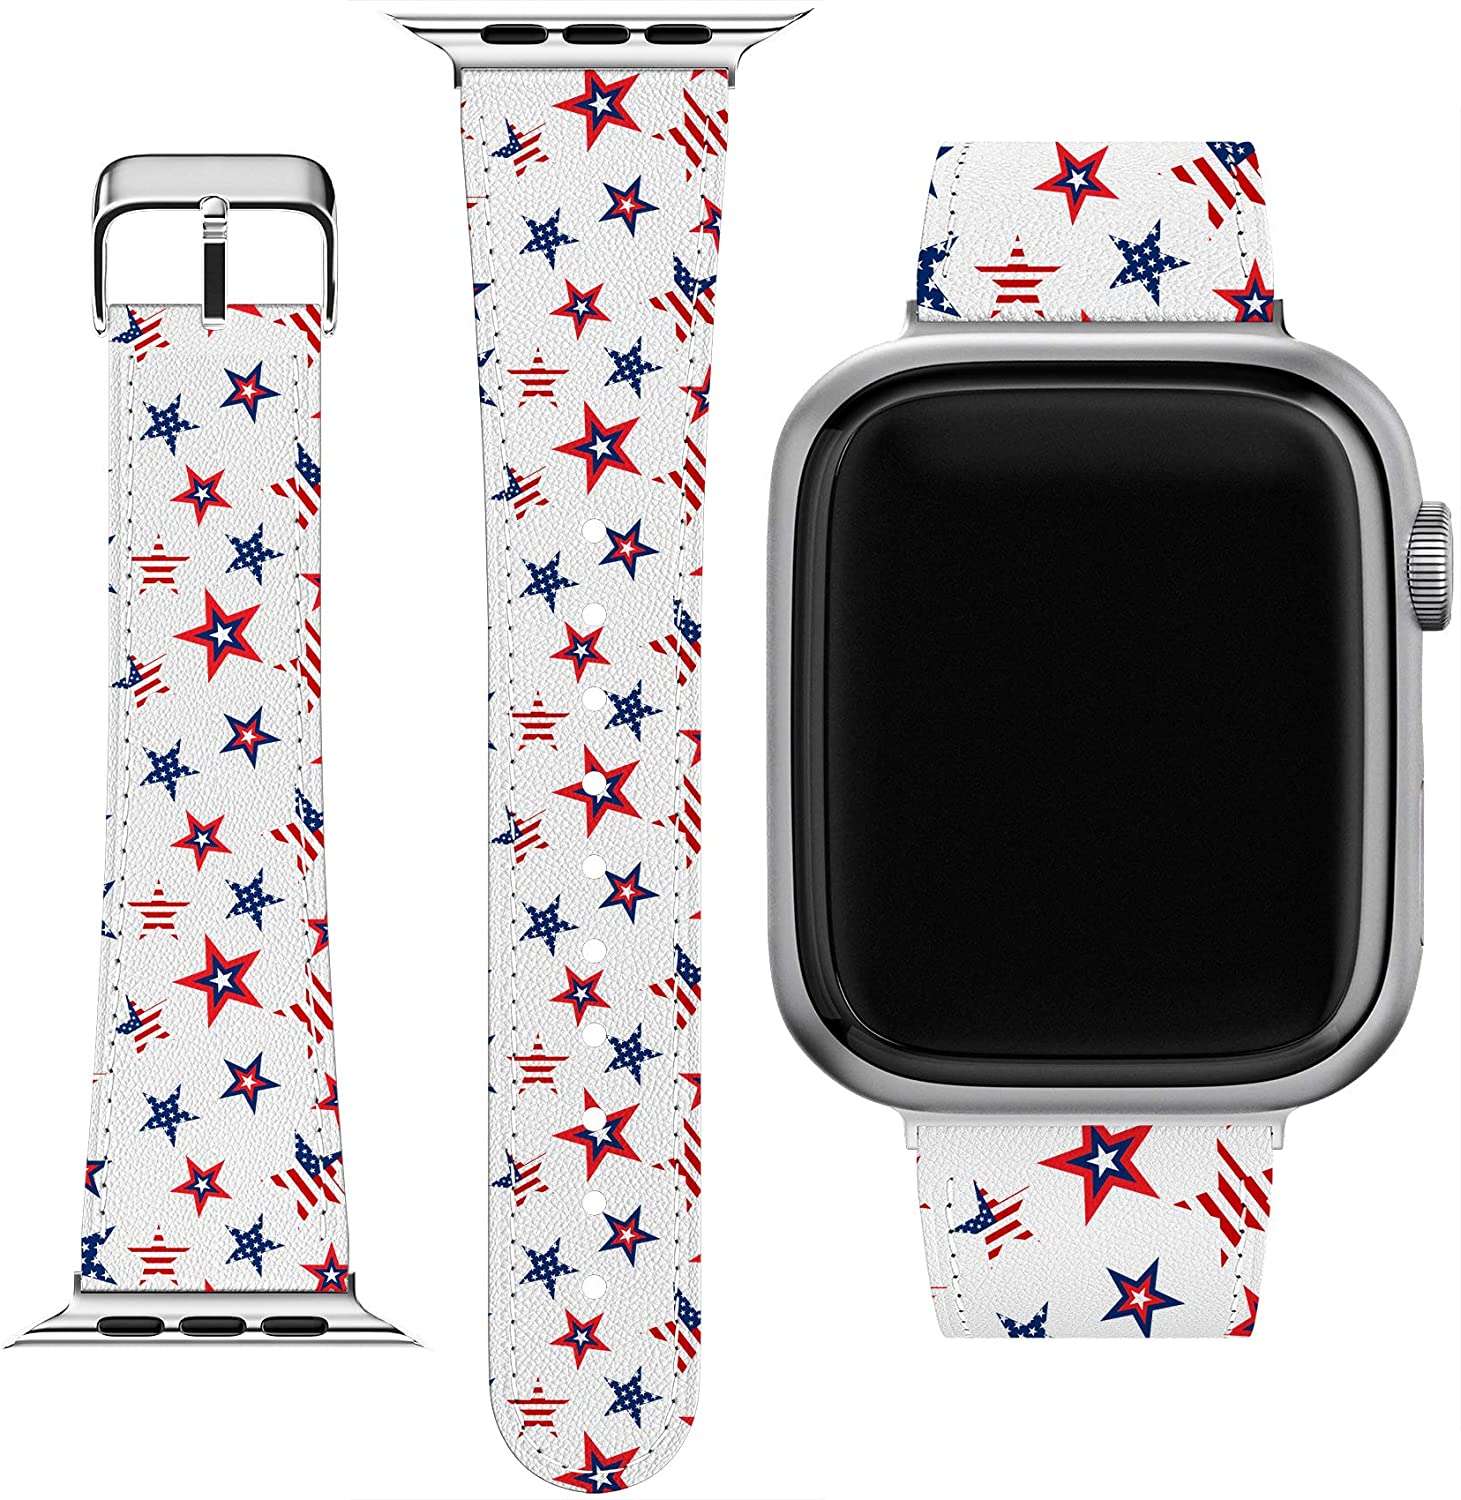 Cavka Wrist Band Replacement for Apple Watch Series 1/2/3/4/5/6/SE Bracelet USA Top Cute Stars Design American Replacement Strap 38-40-42-44 mm Printed Trend Patriotic Slim fit Flag Pattern PU Leather